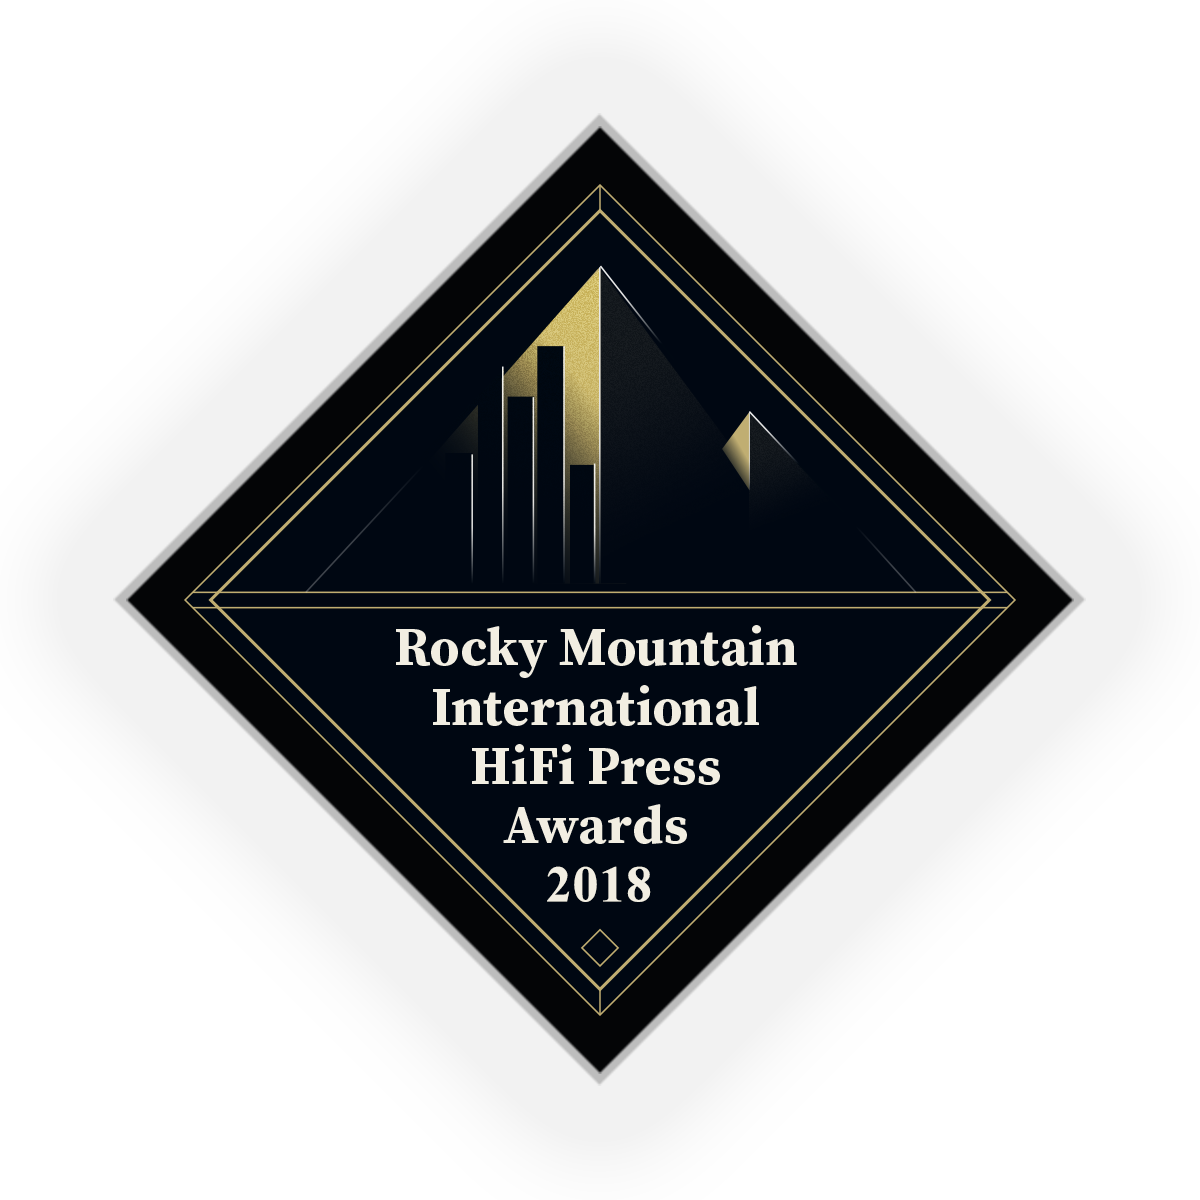 Rocky Mountain International HiFi Press Award 2018